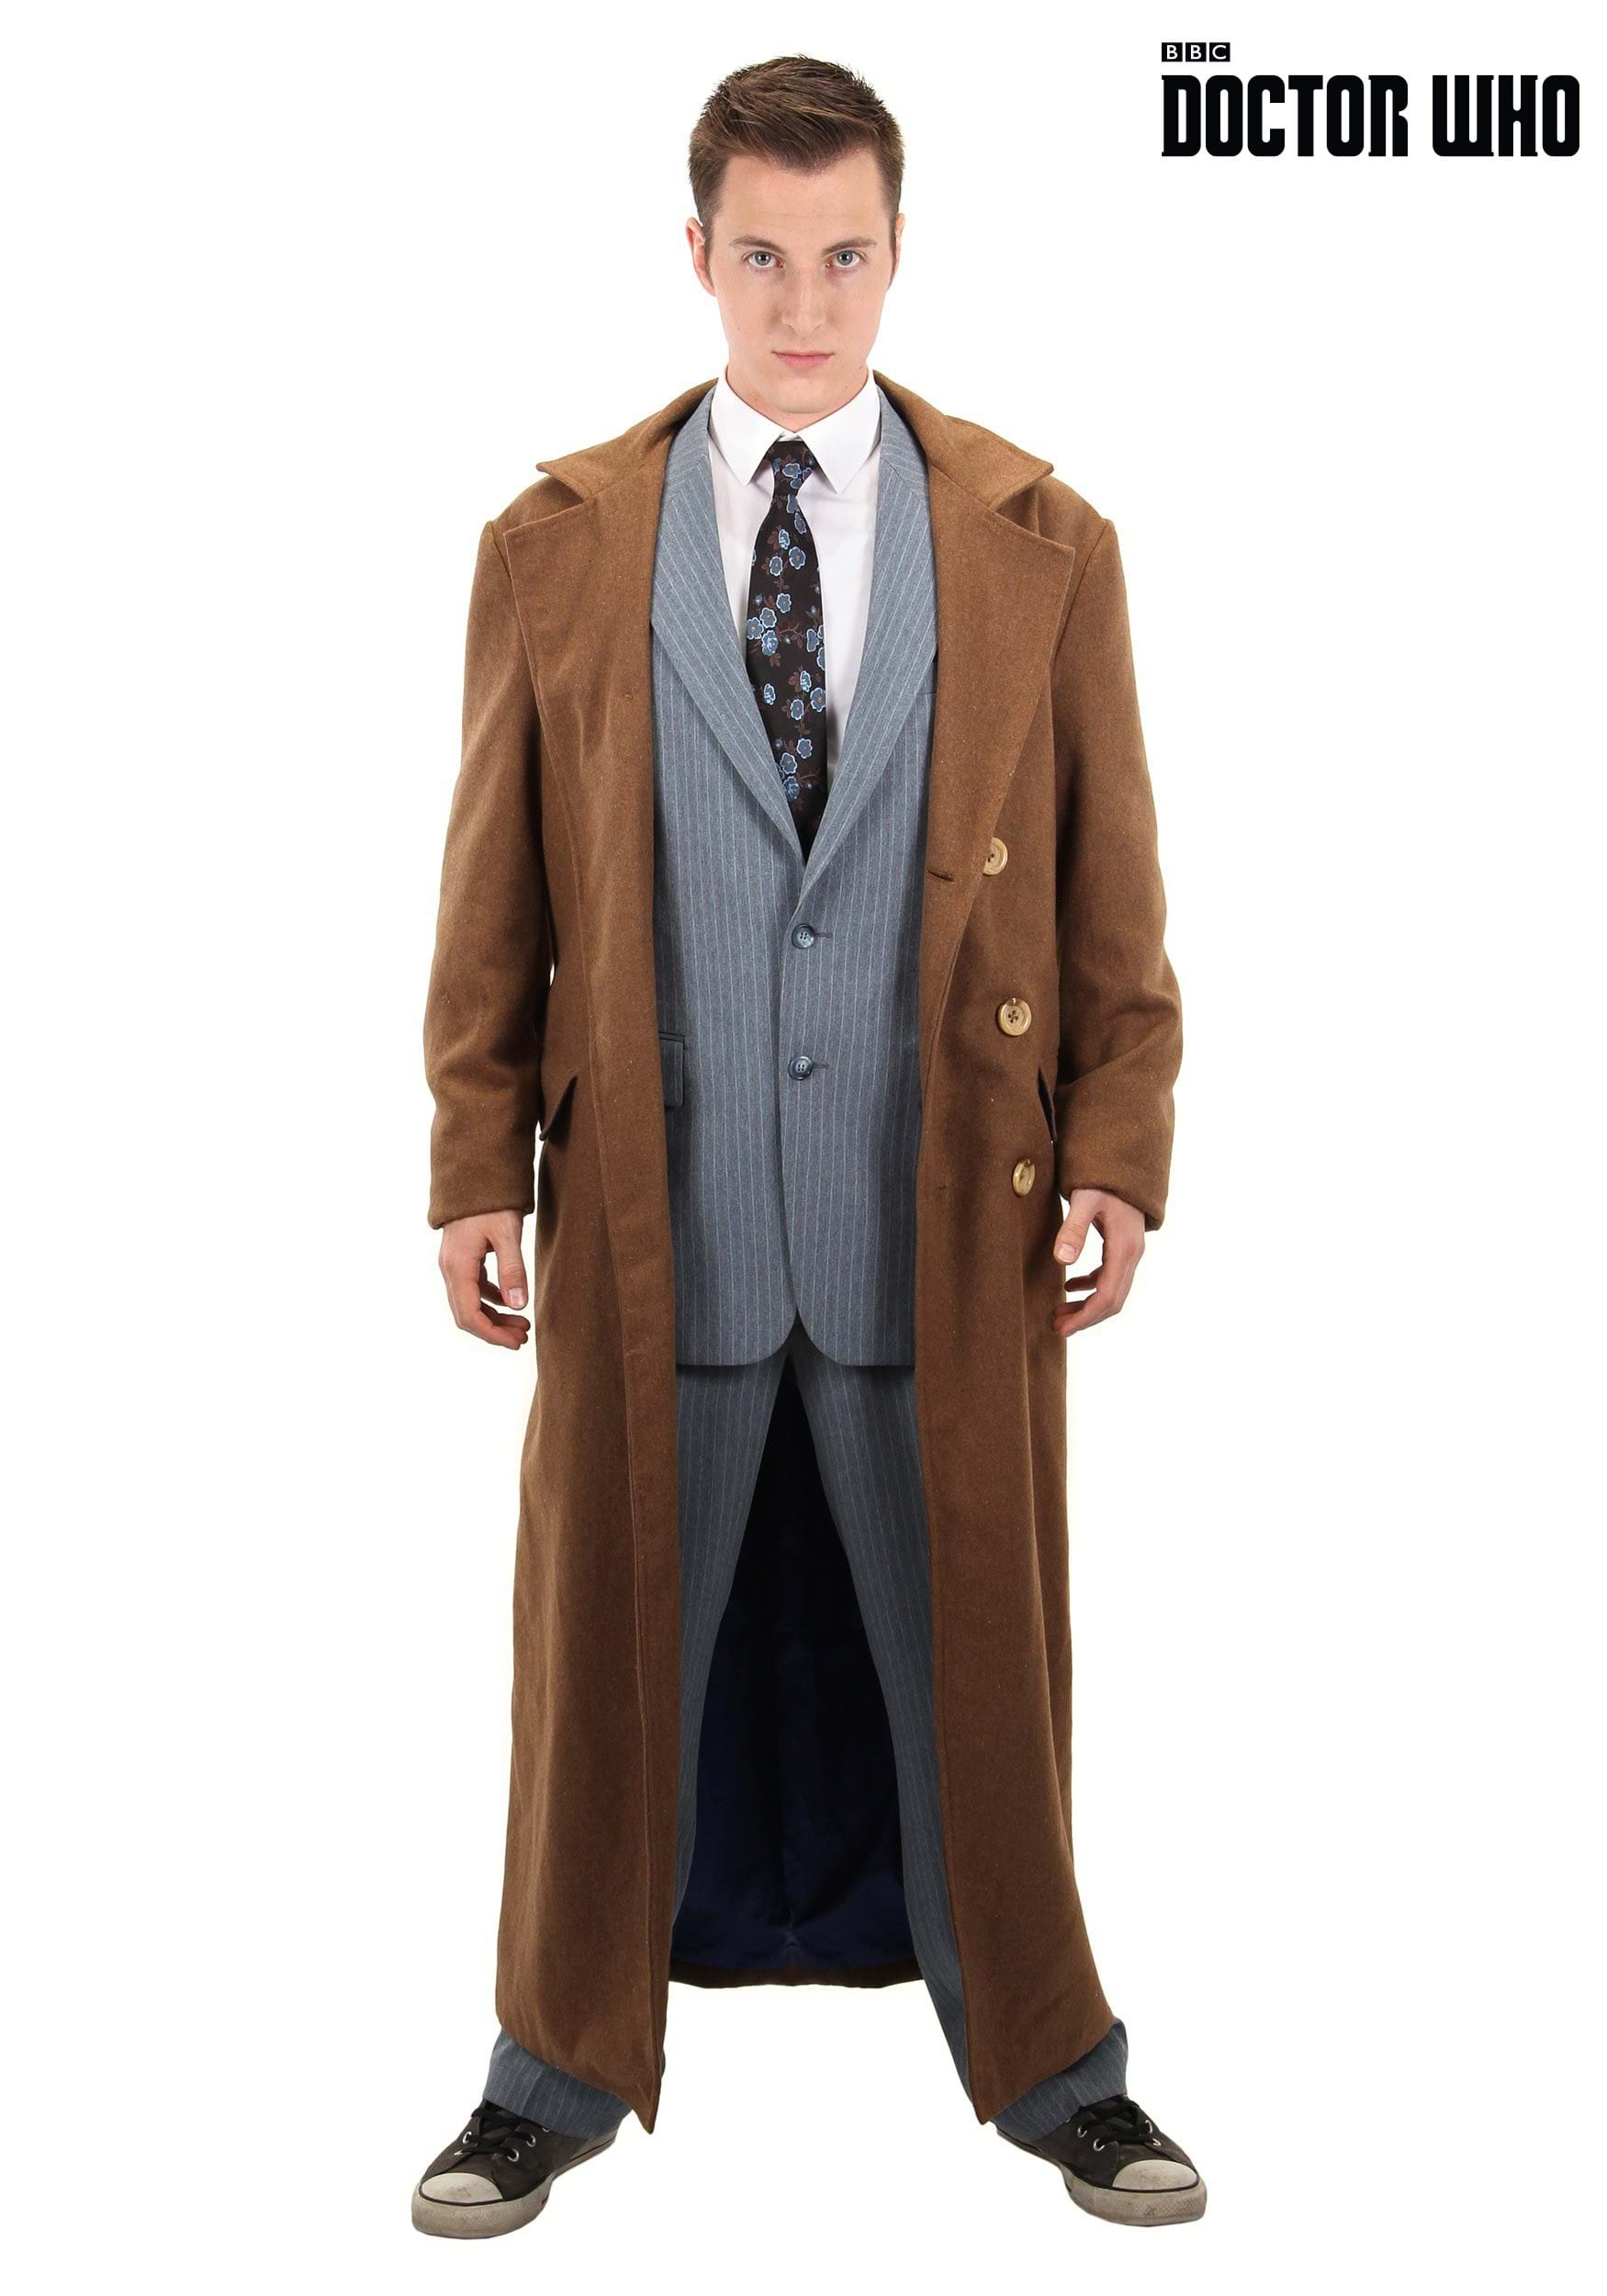 DOCTOR WHO 10TH DOCTOR COAT costume cosplay Halloween